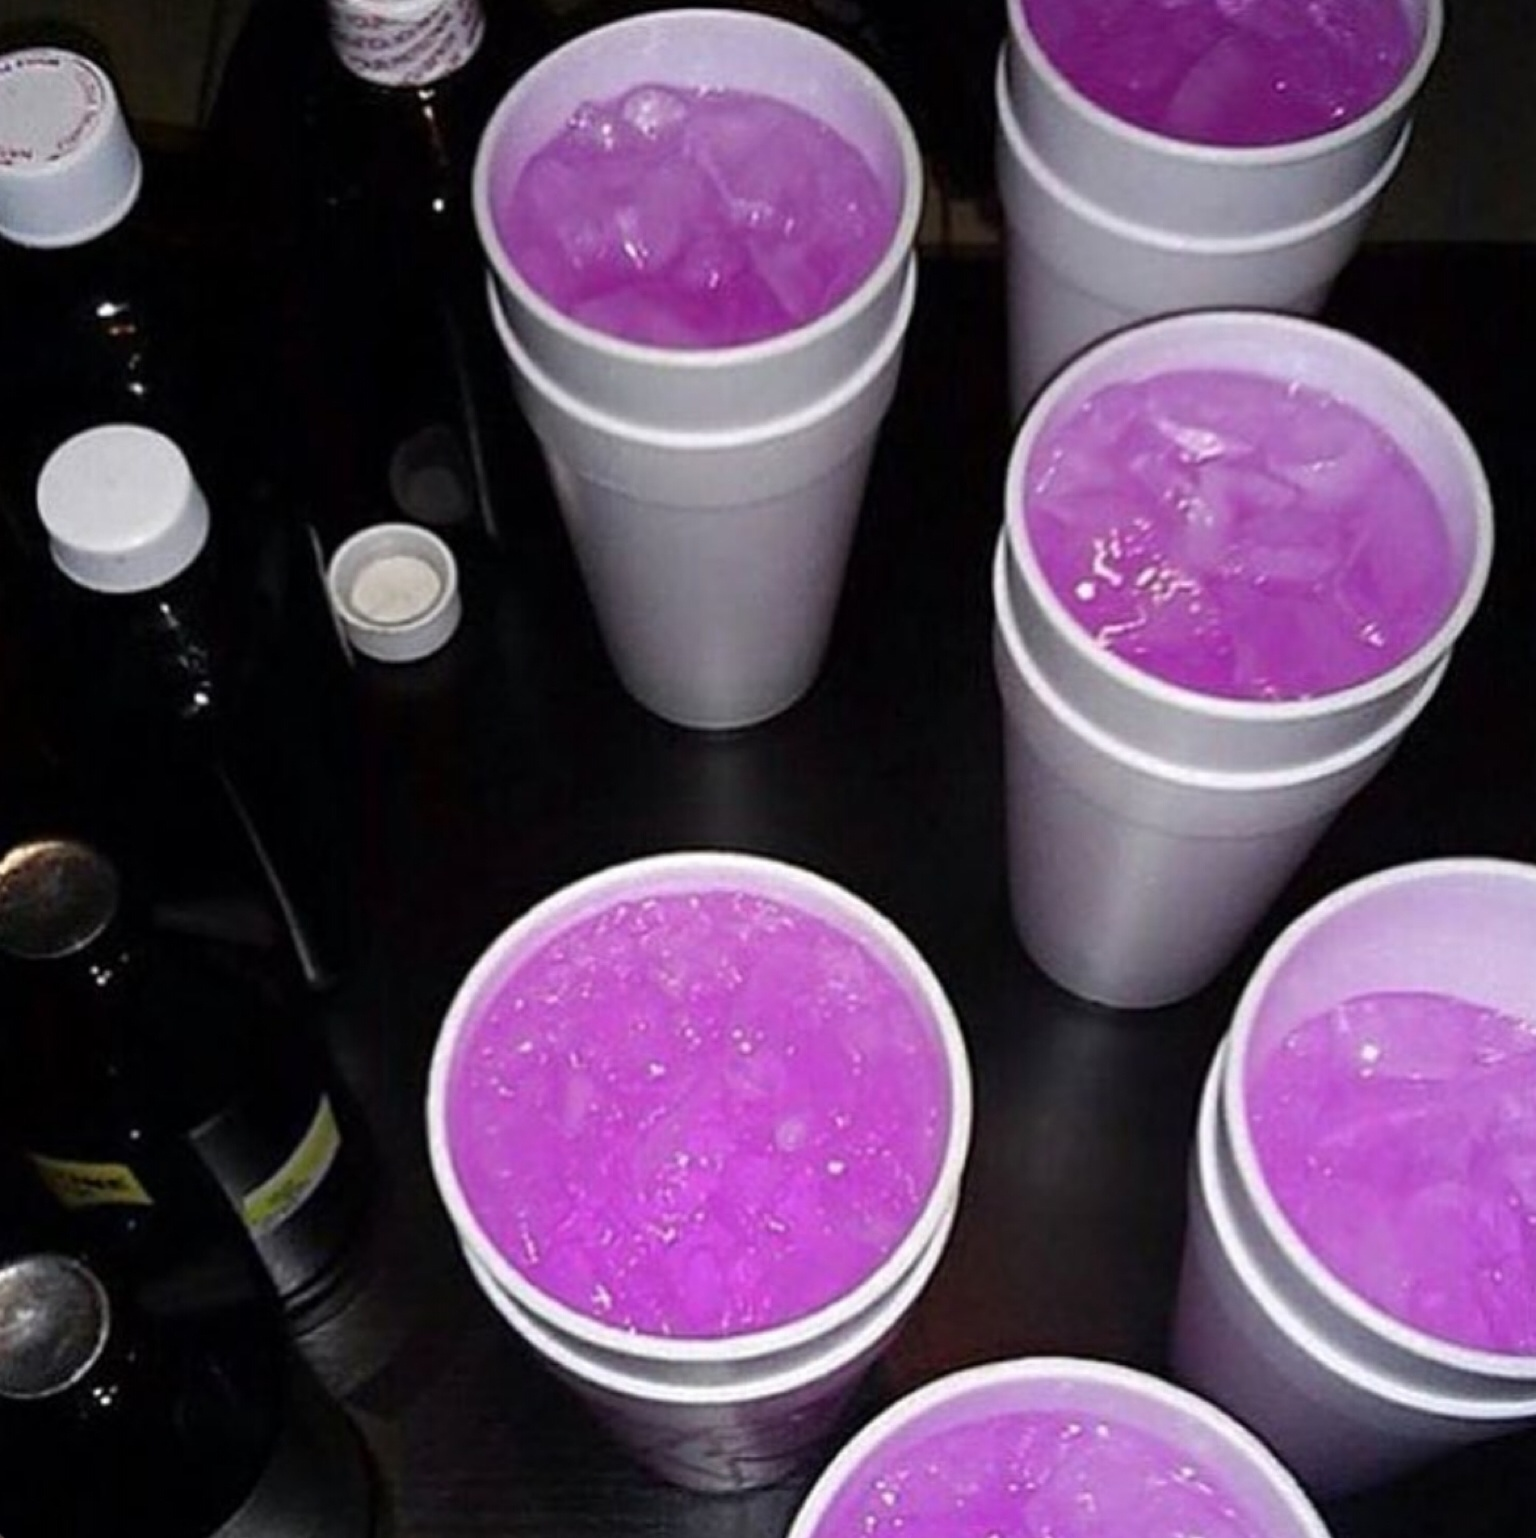 cyber, drink, purple, trill, soft ghetto